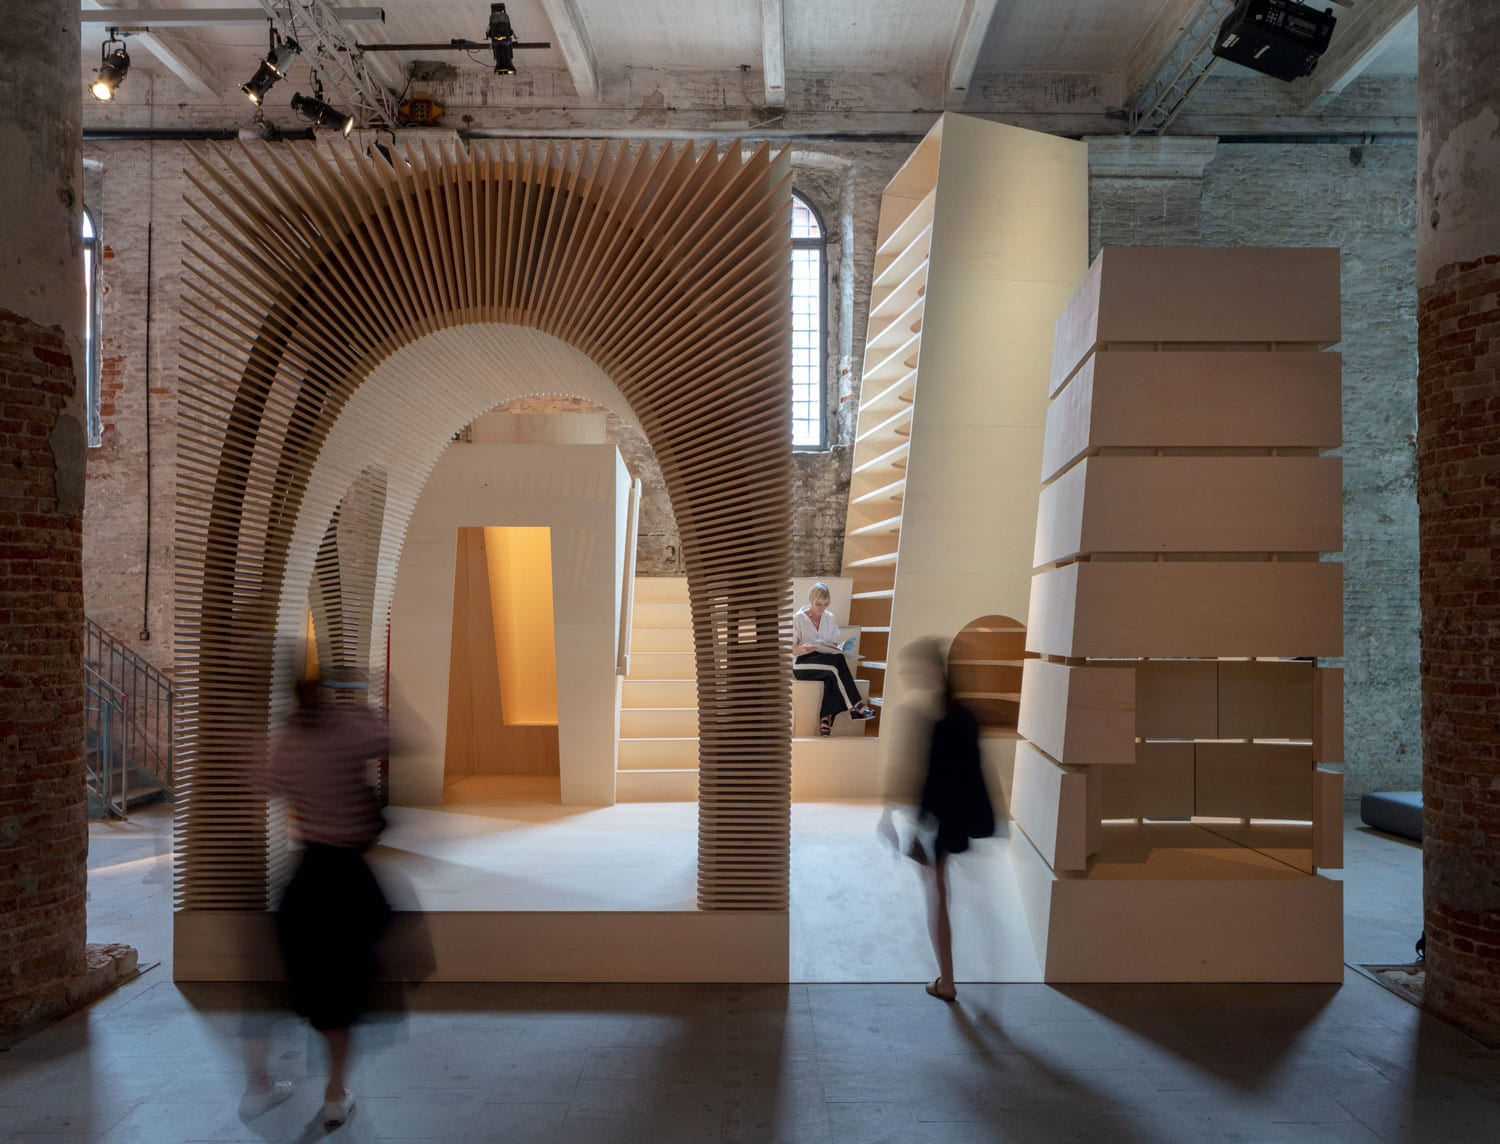 ReCasting by Alison Brooks Architects, Venice Architecture Biennale 2018 | Yellowtrace